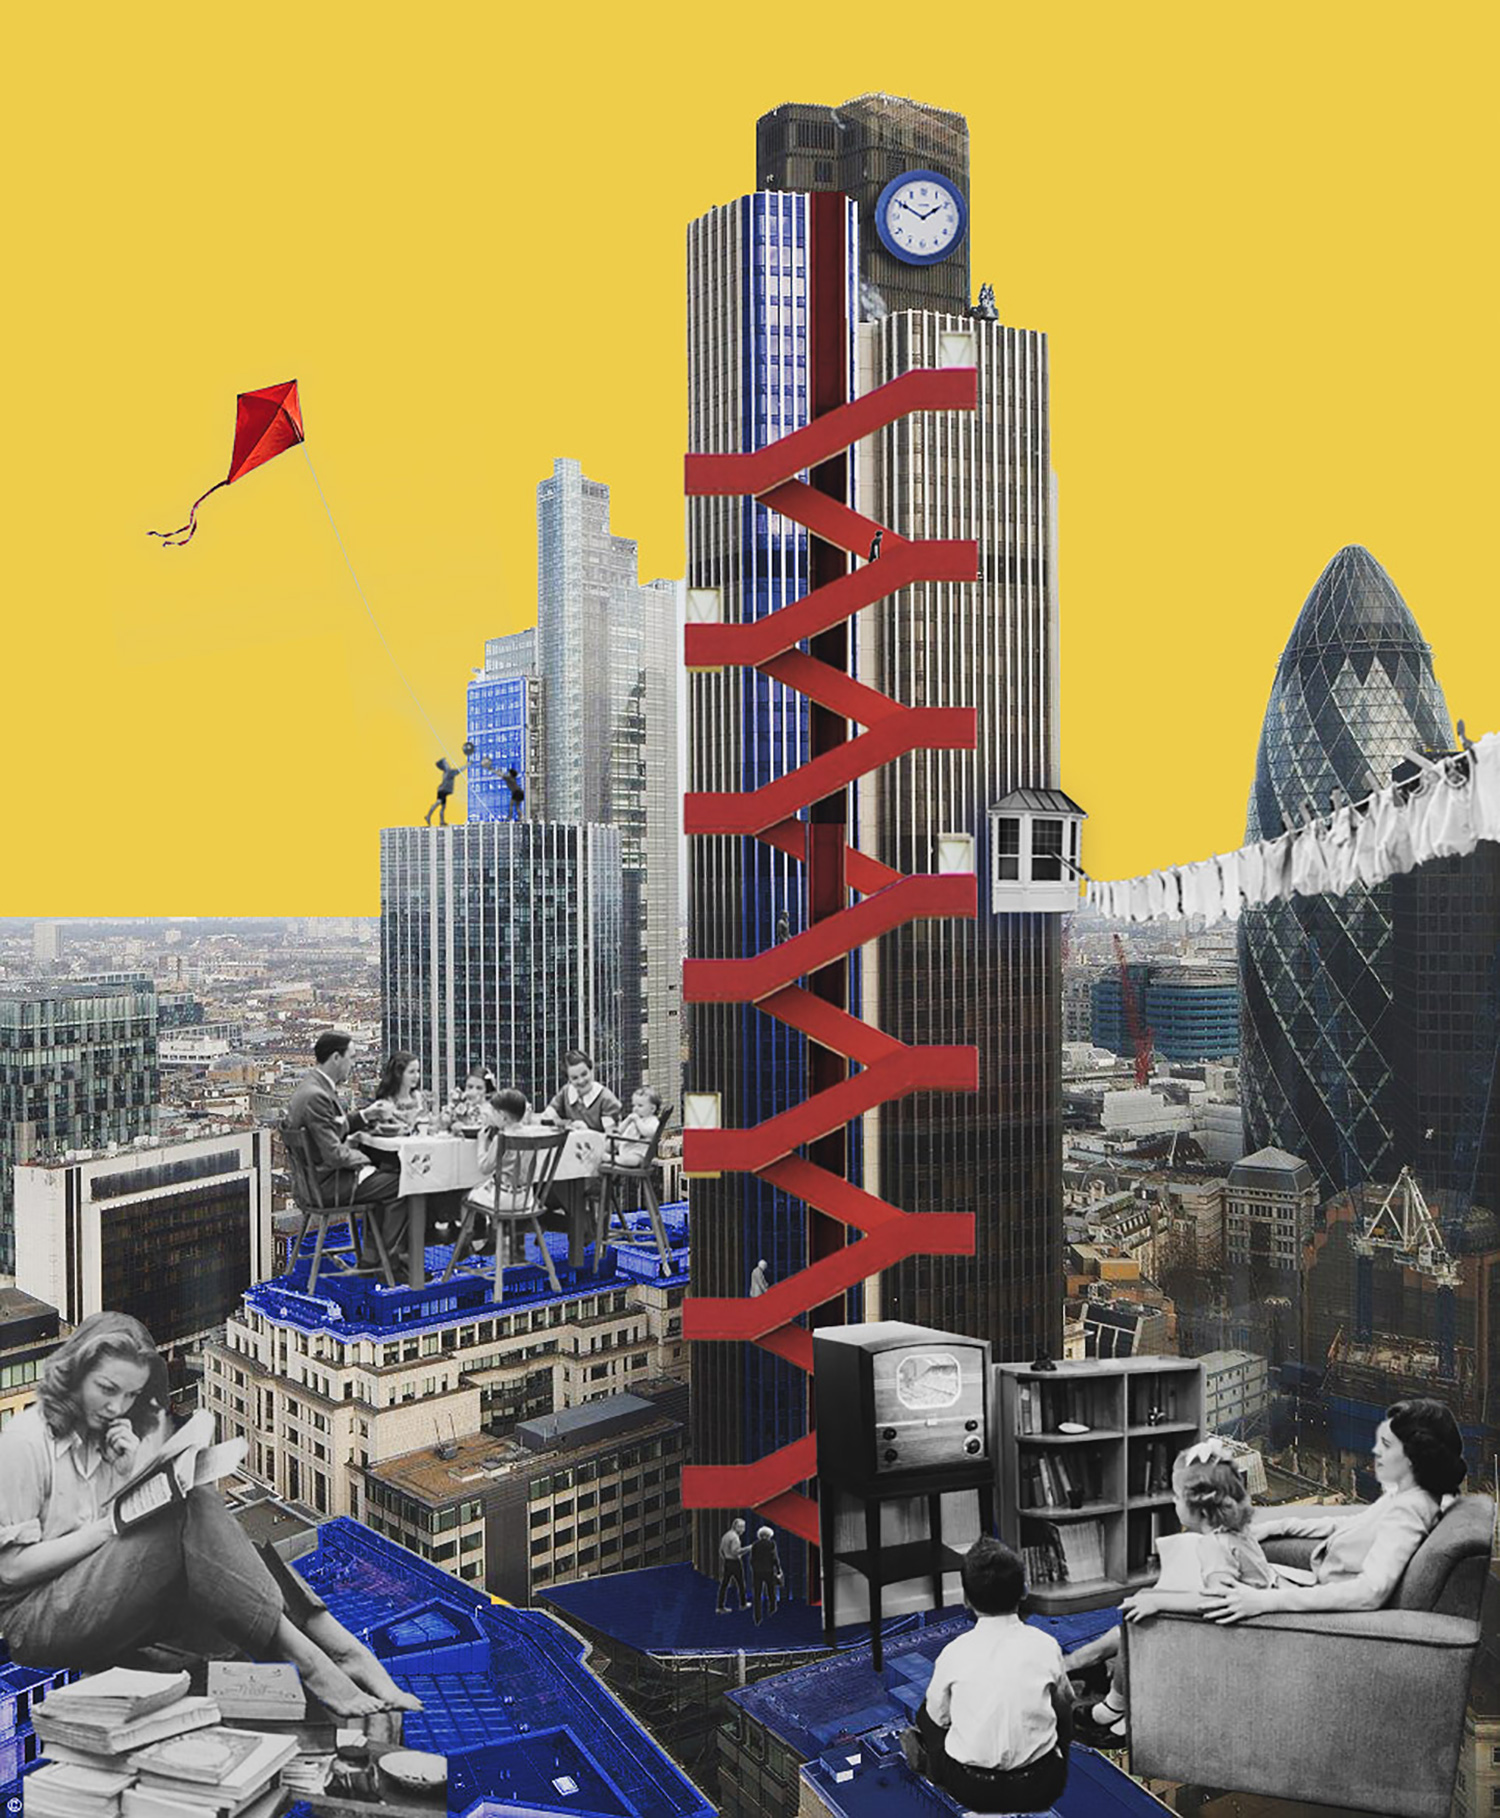 Concept collage – The 'Live-able' City: Home